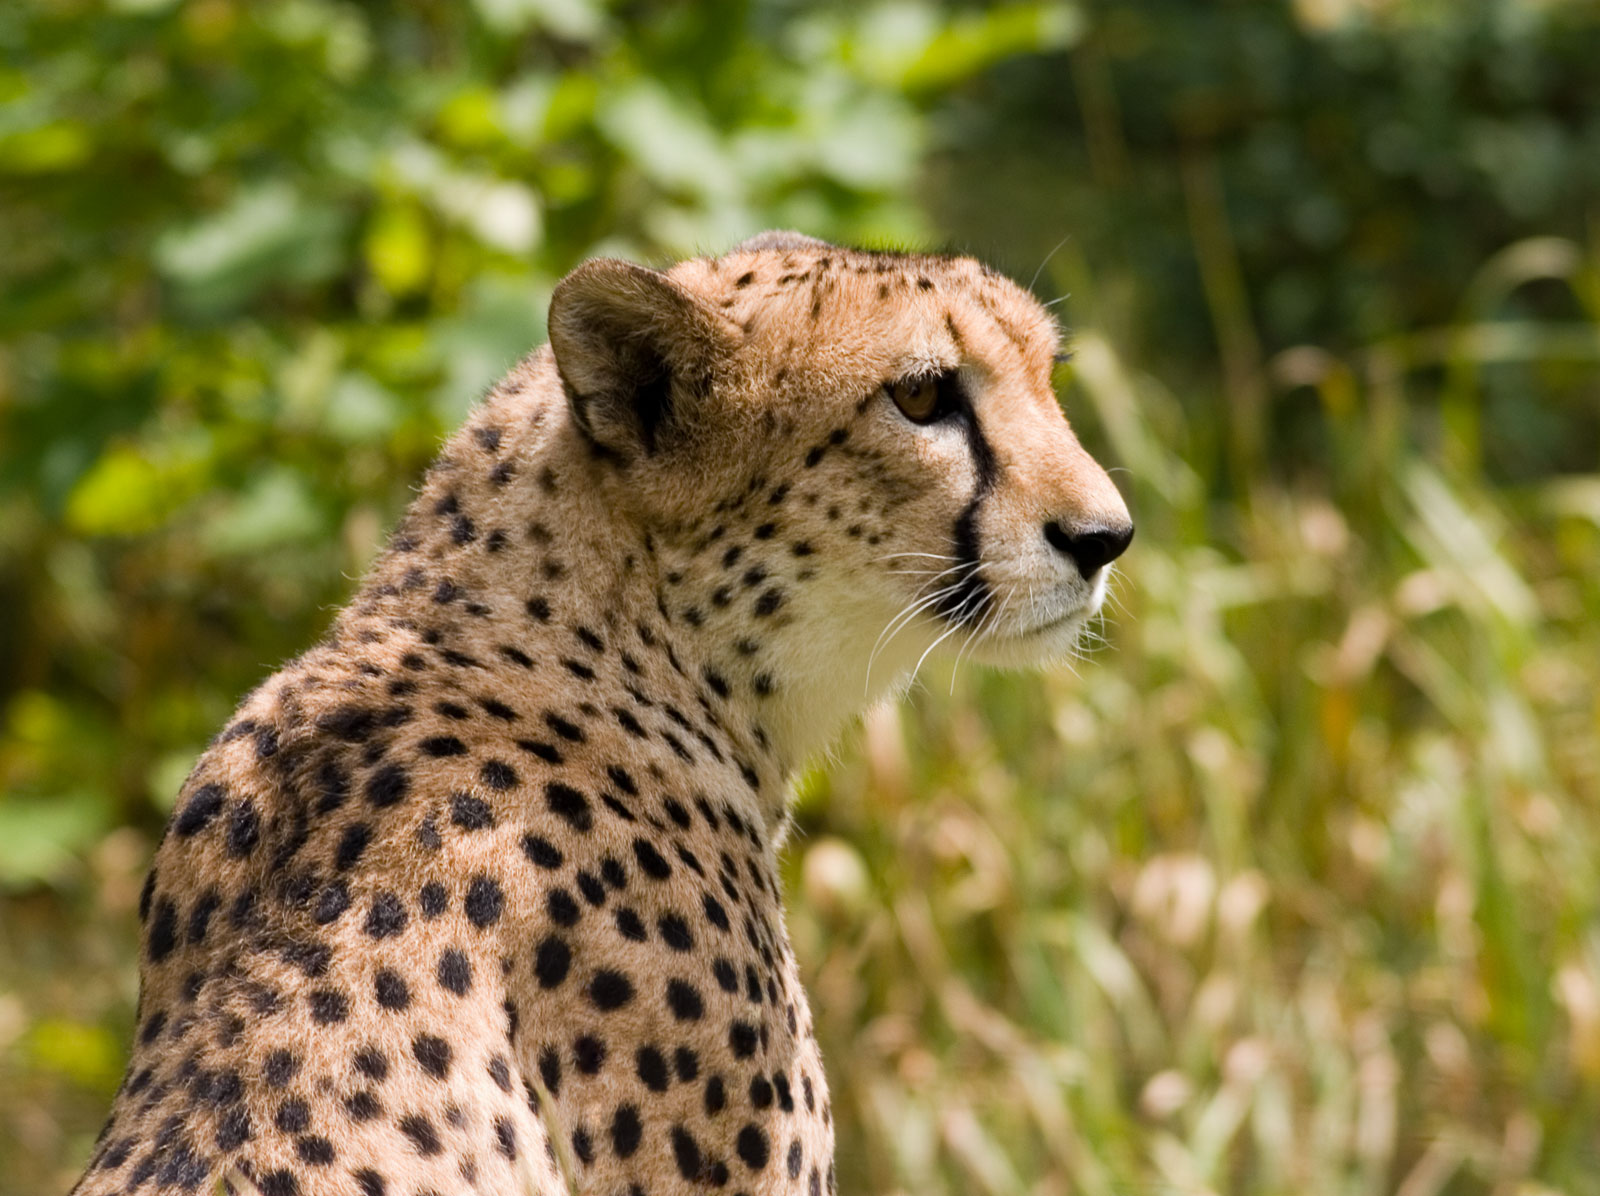 File:Cheetah4.jpg